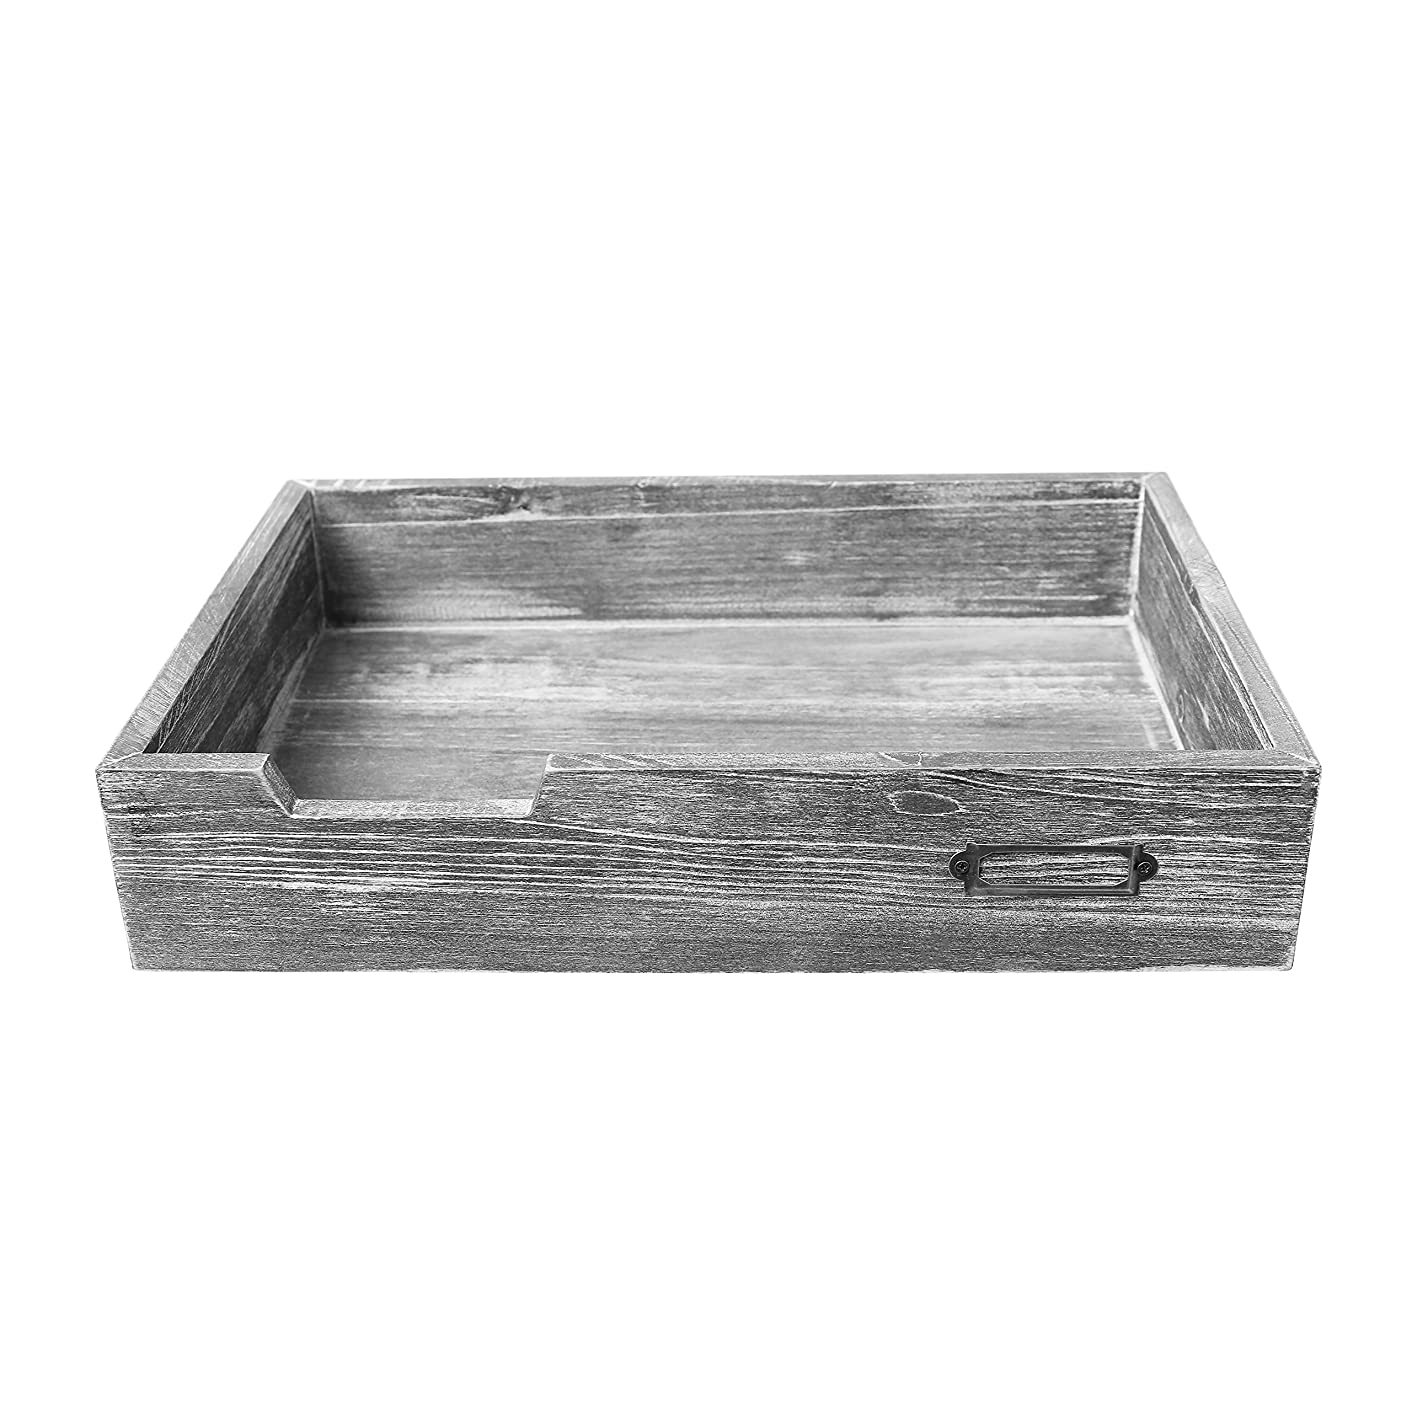 Barnwood Dark Gray Drawer-Style Stackable Wood Document & Literature Tray, Office Supplies Bin